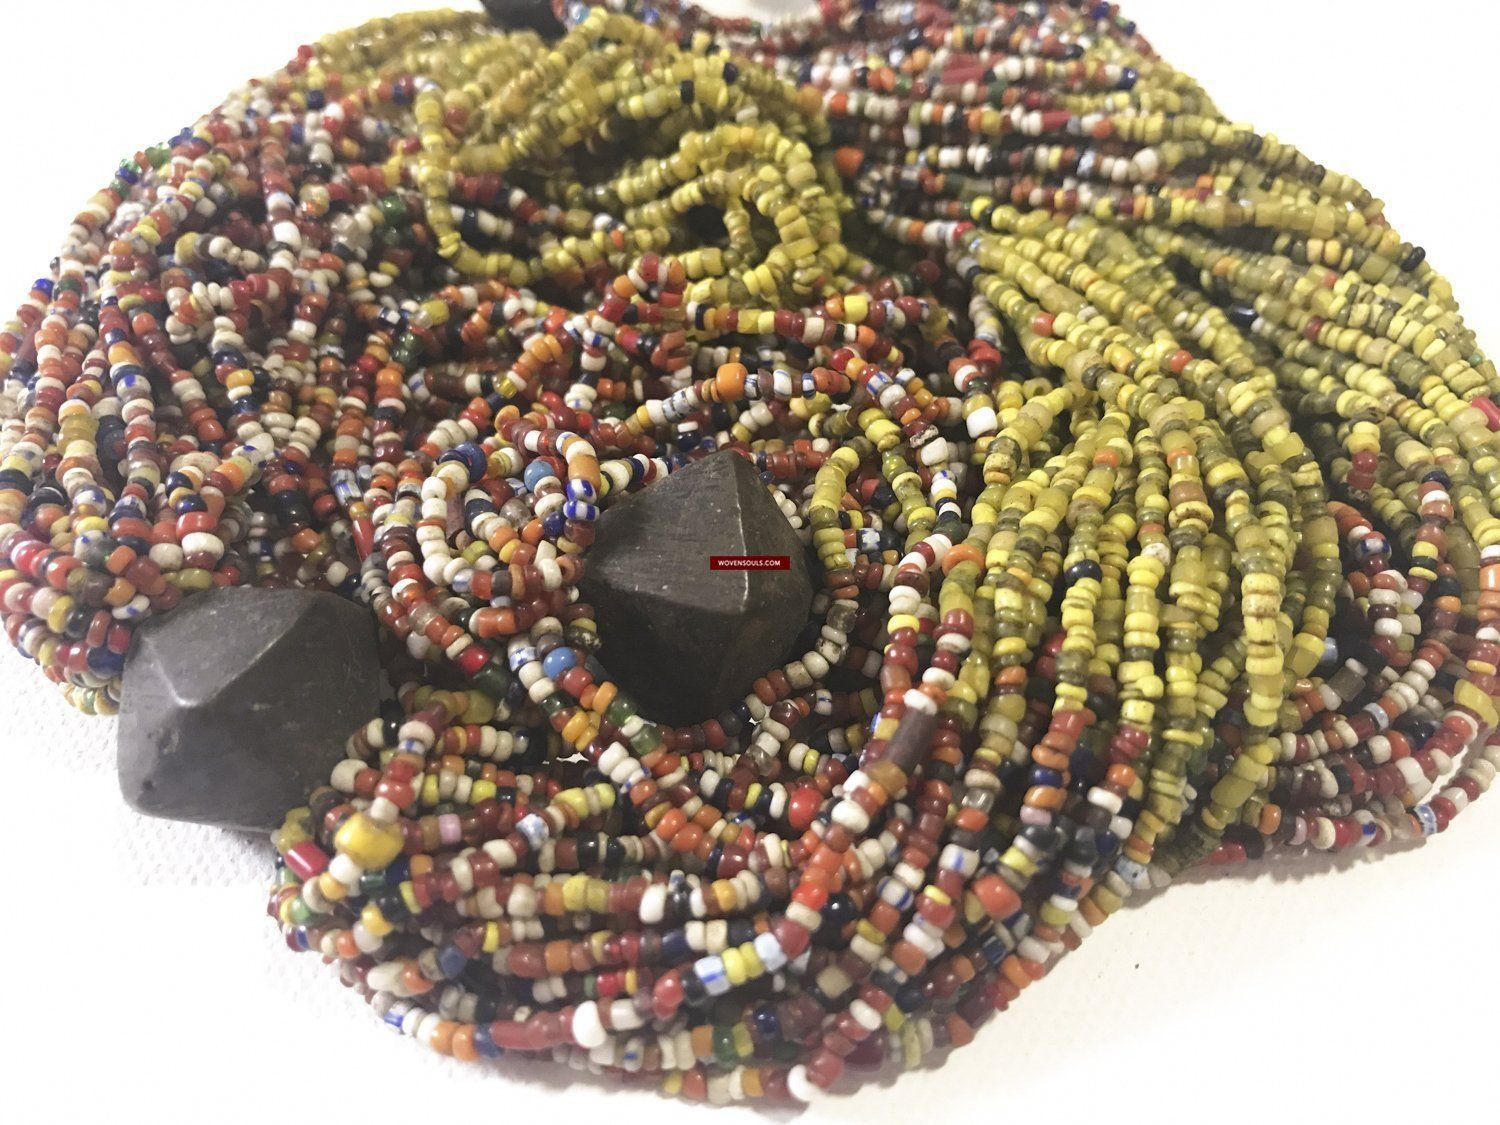 yellow glass beads for vases of 1220 antique tribal bead necklace with glass and 4 bronze beads inside 1220 antique tribal bead necklace with glass and 4 bronze beads odisha wovensouls